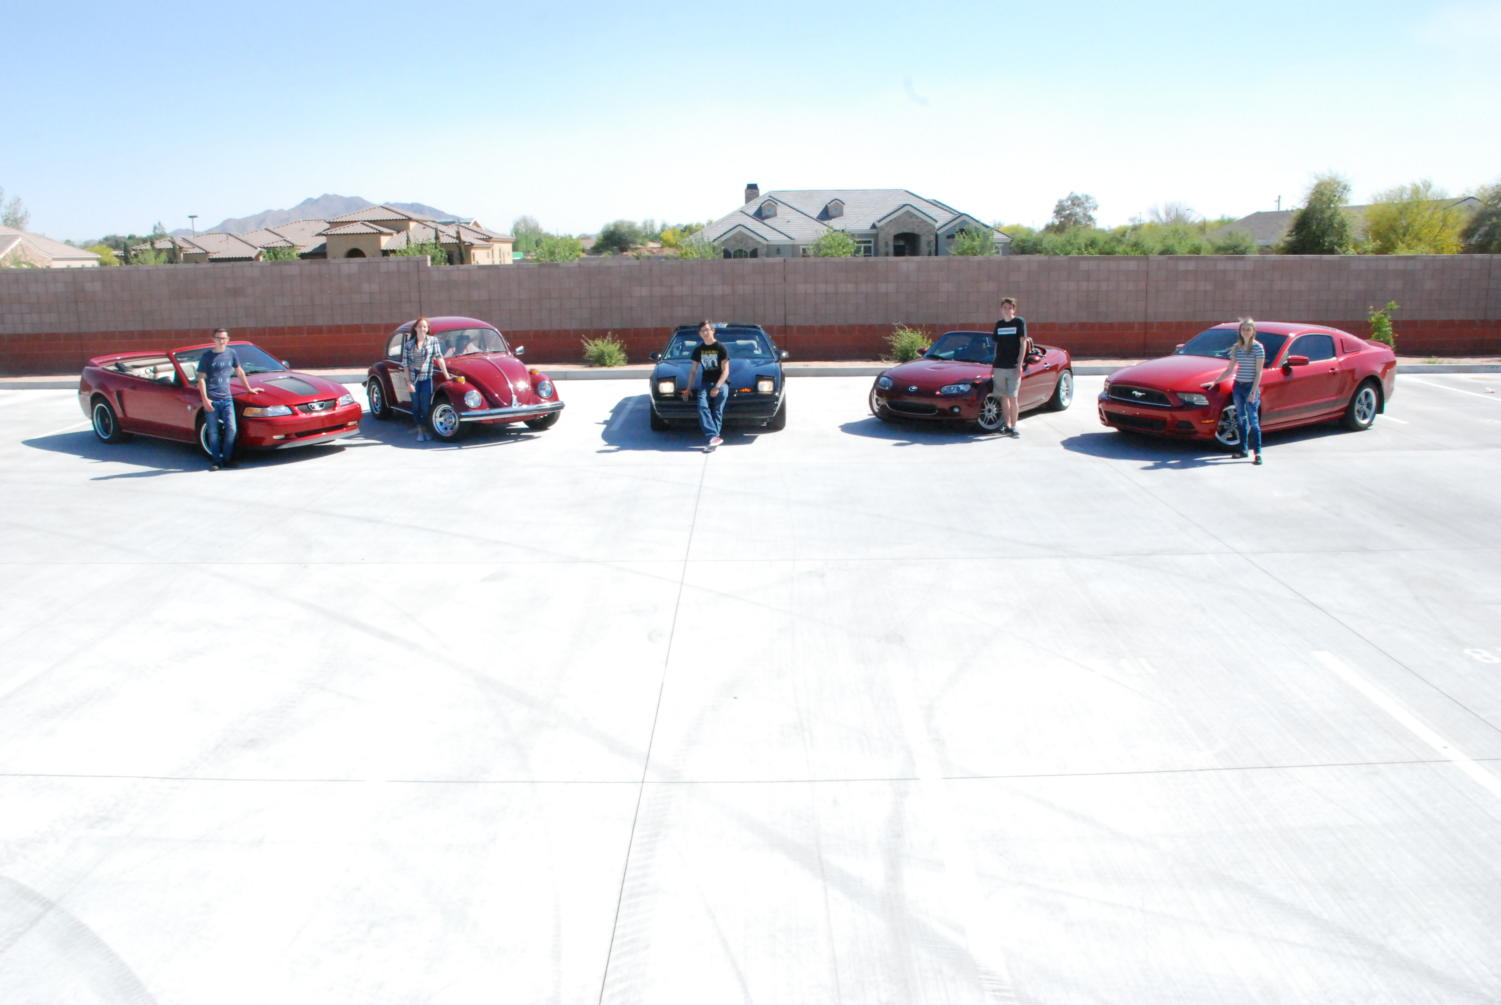 Left to right: Jakob Shapiro and his '99 Mustang GT; Isabela Olivarez and her '75 Beetle; Andy Gongora and his '89 Firebird; Andrew Drake and his '09 Miata MX-5; Bailey Davis and her '14 Mustang